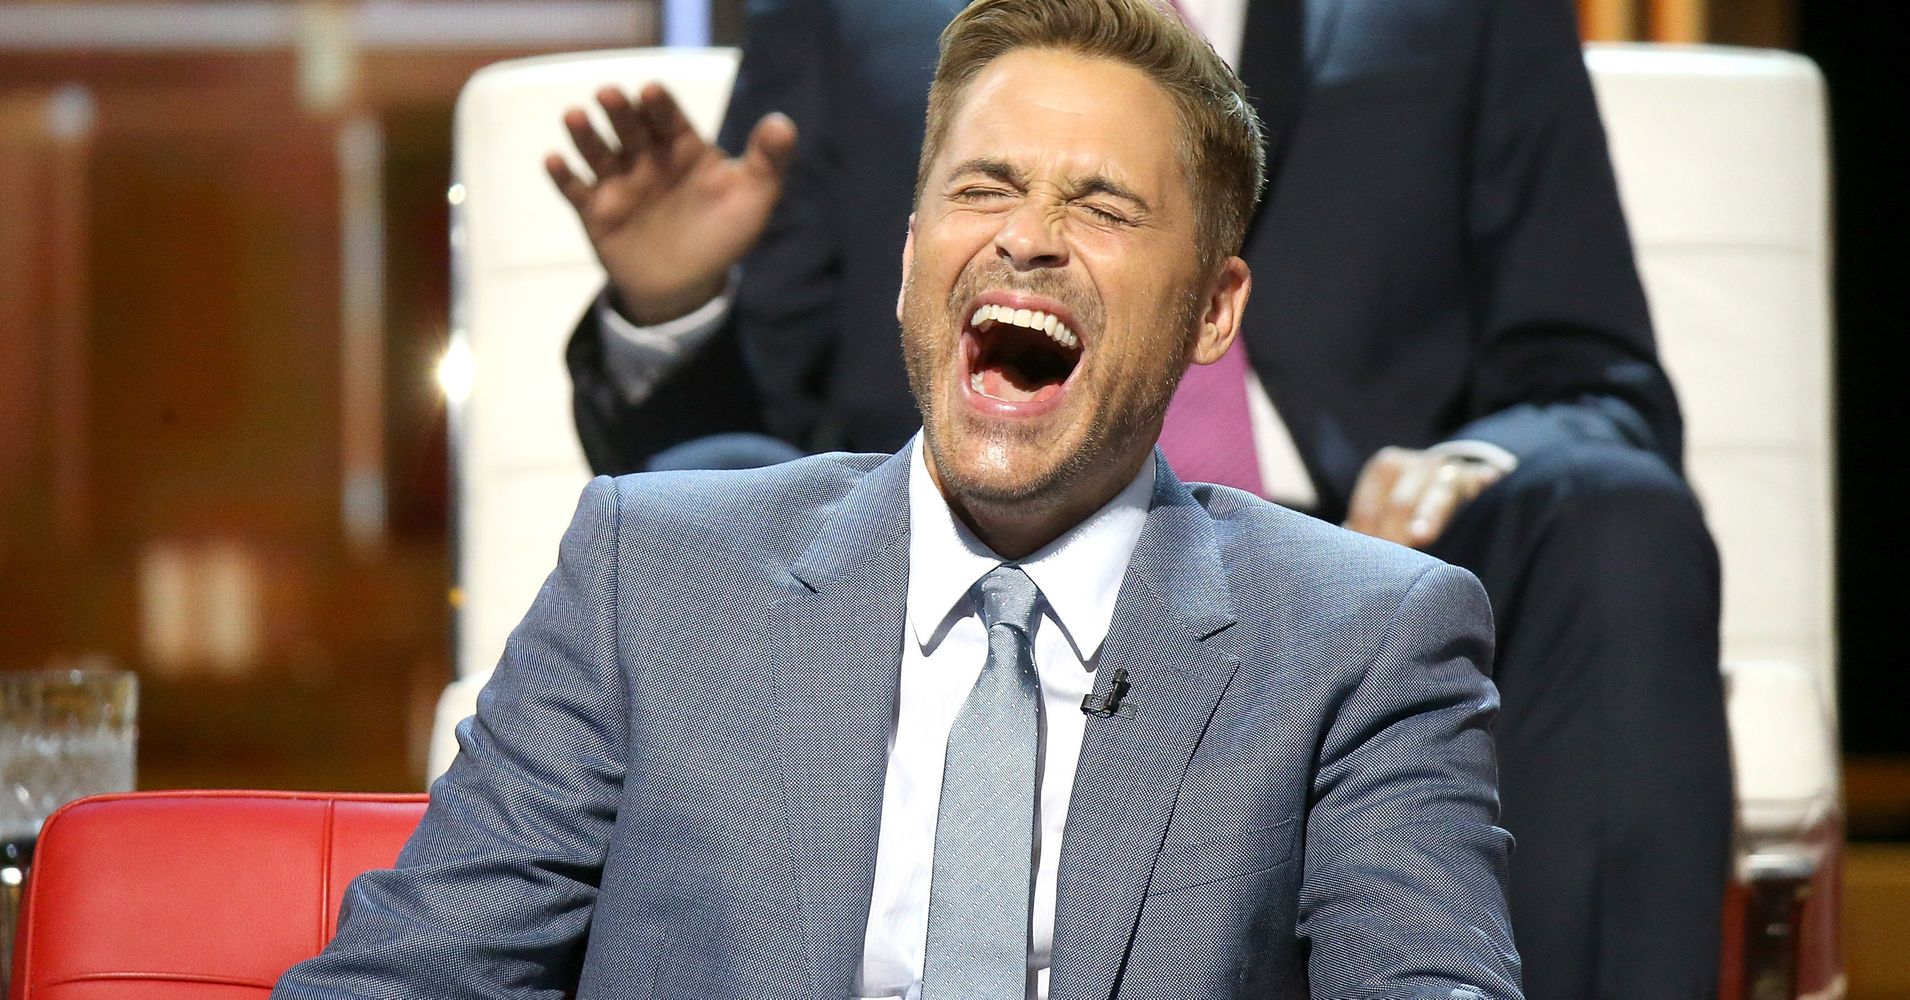 Rob lowe wife ugly, fucking insertions